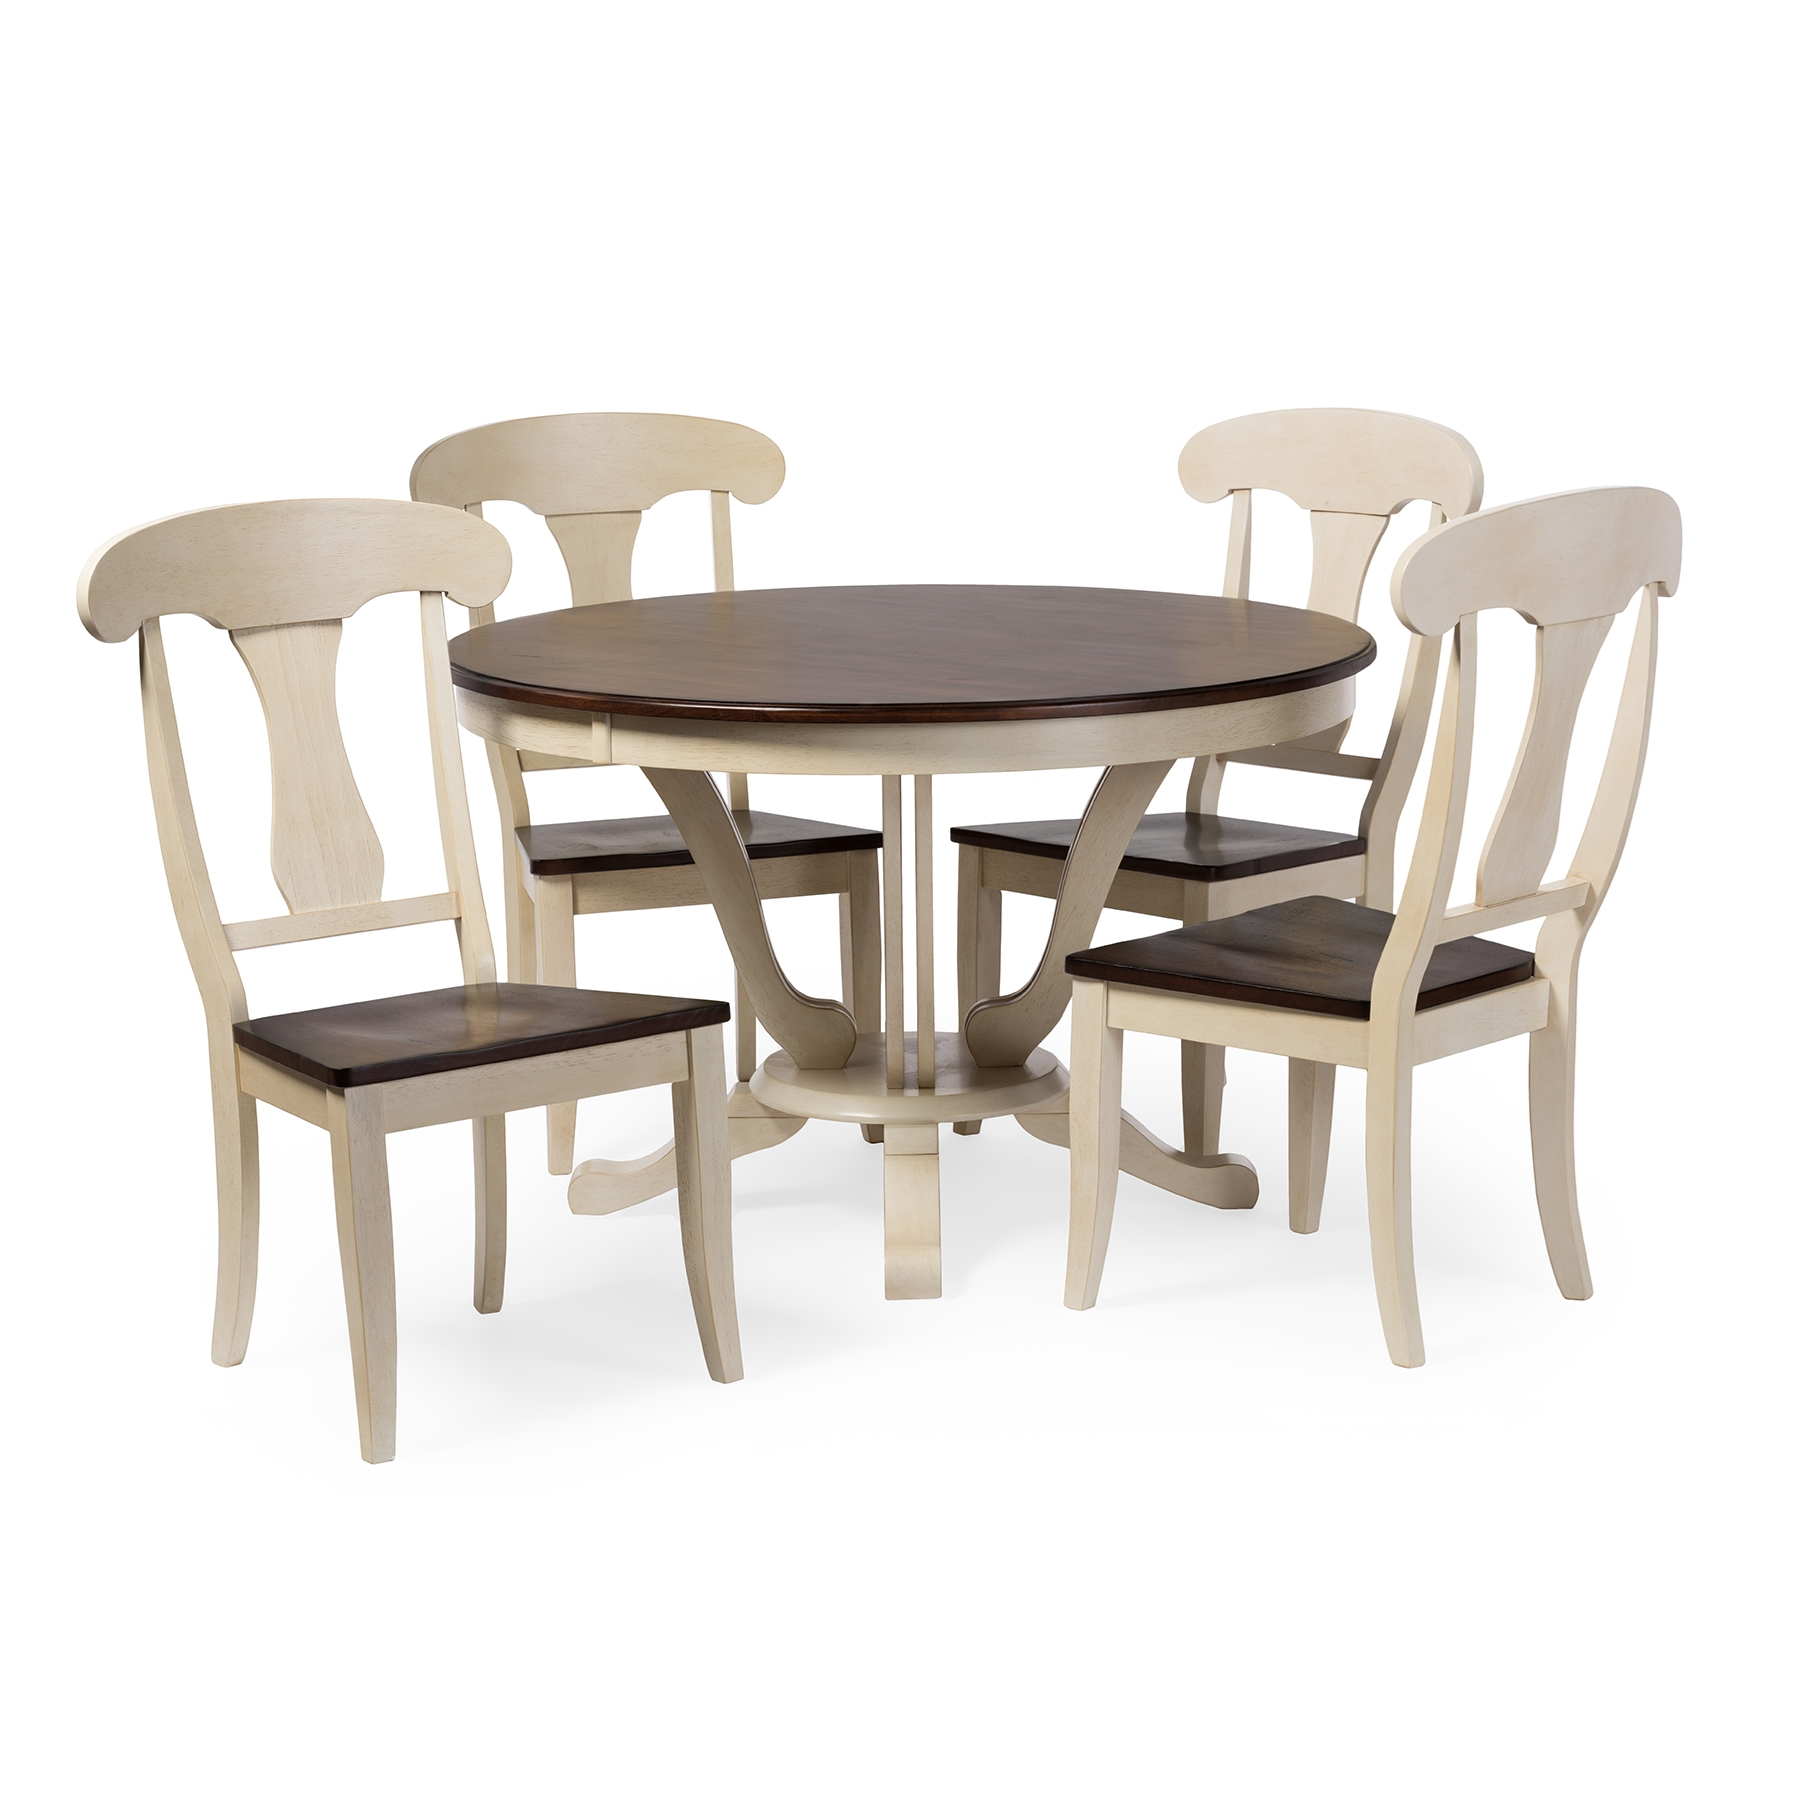 Baxton Studio |Wholesale Dining Sets | Wholesale Dining Room Furniture |  Baxton Studio Furniture